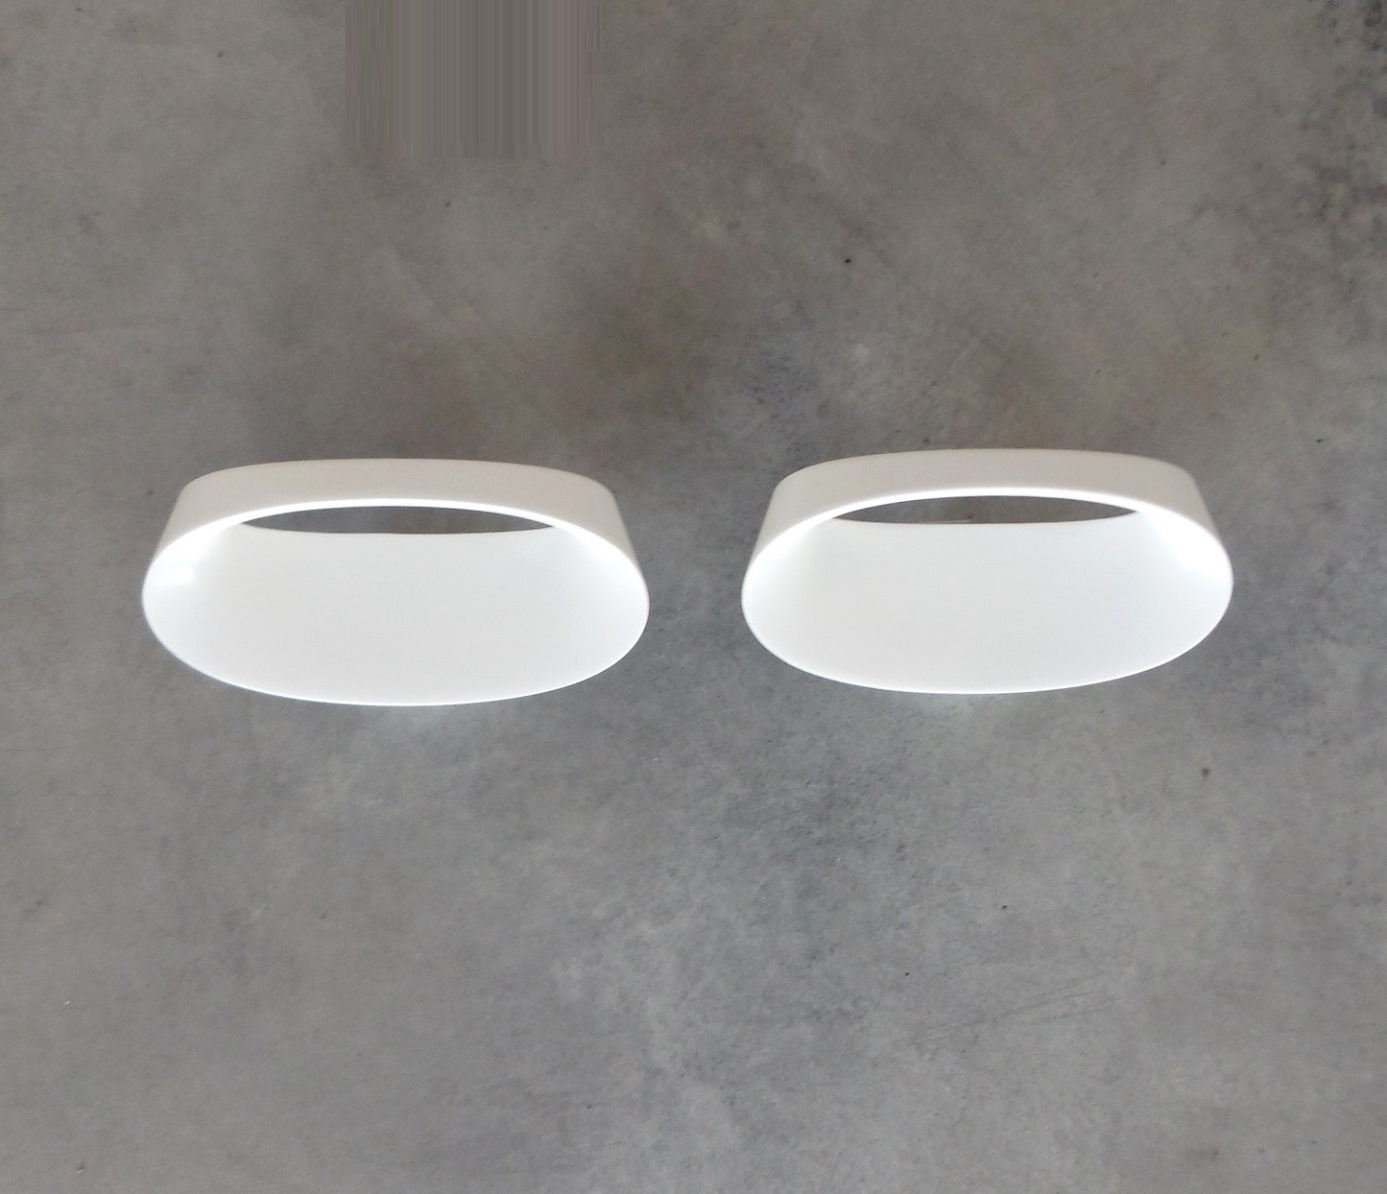 Led vendita on line illuminazione fontana arte applique for Design vendita online